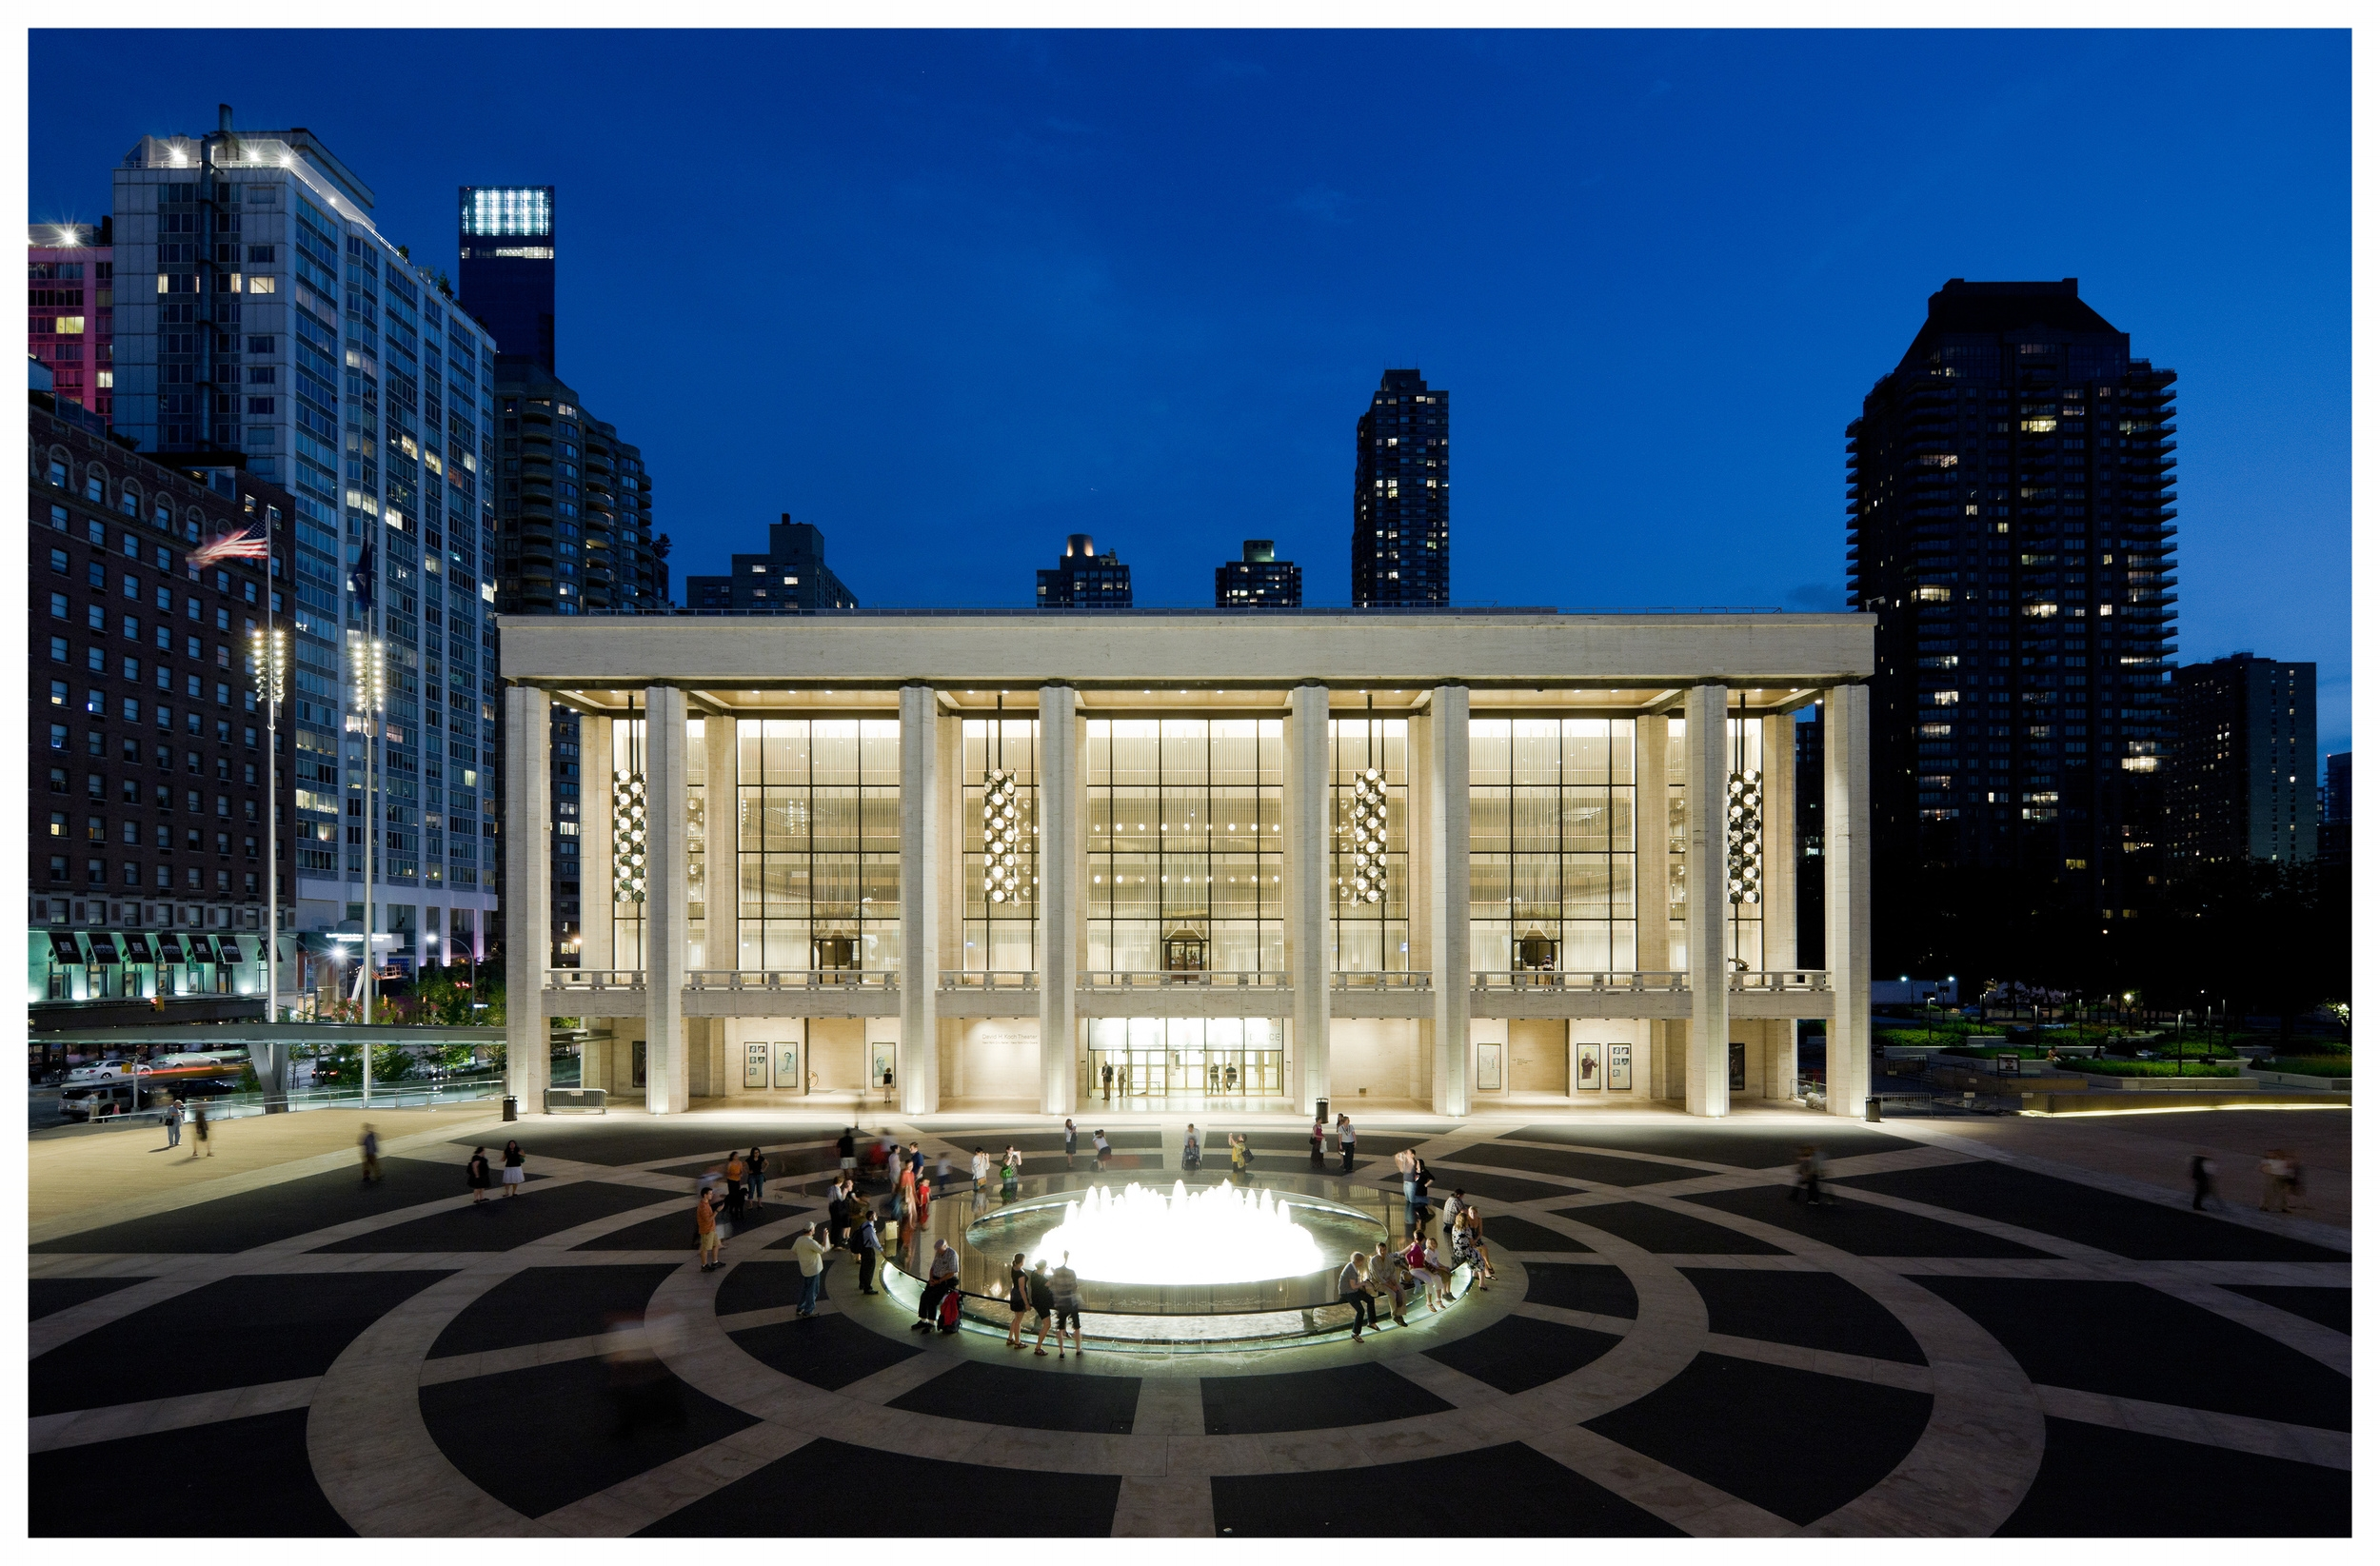 Lincoln Center Plazas_03_DNedit.jpg